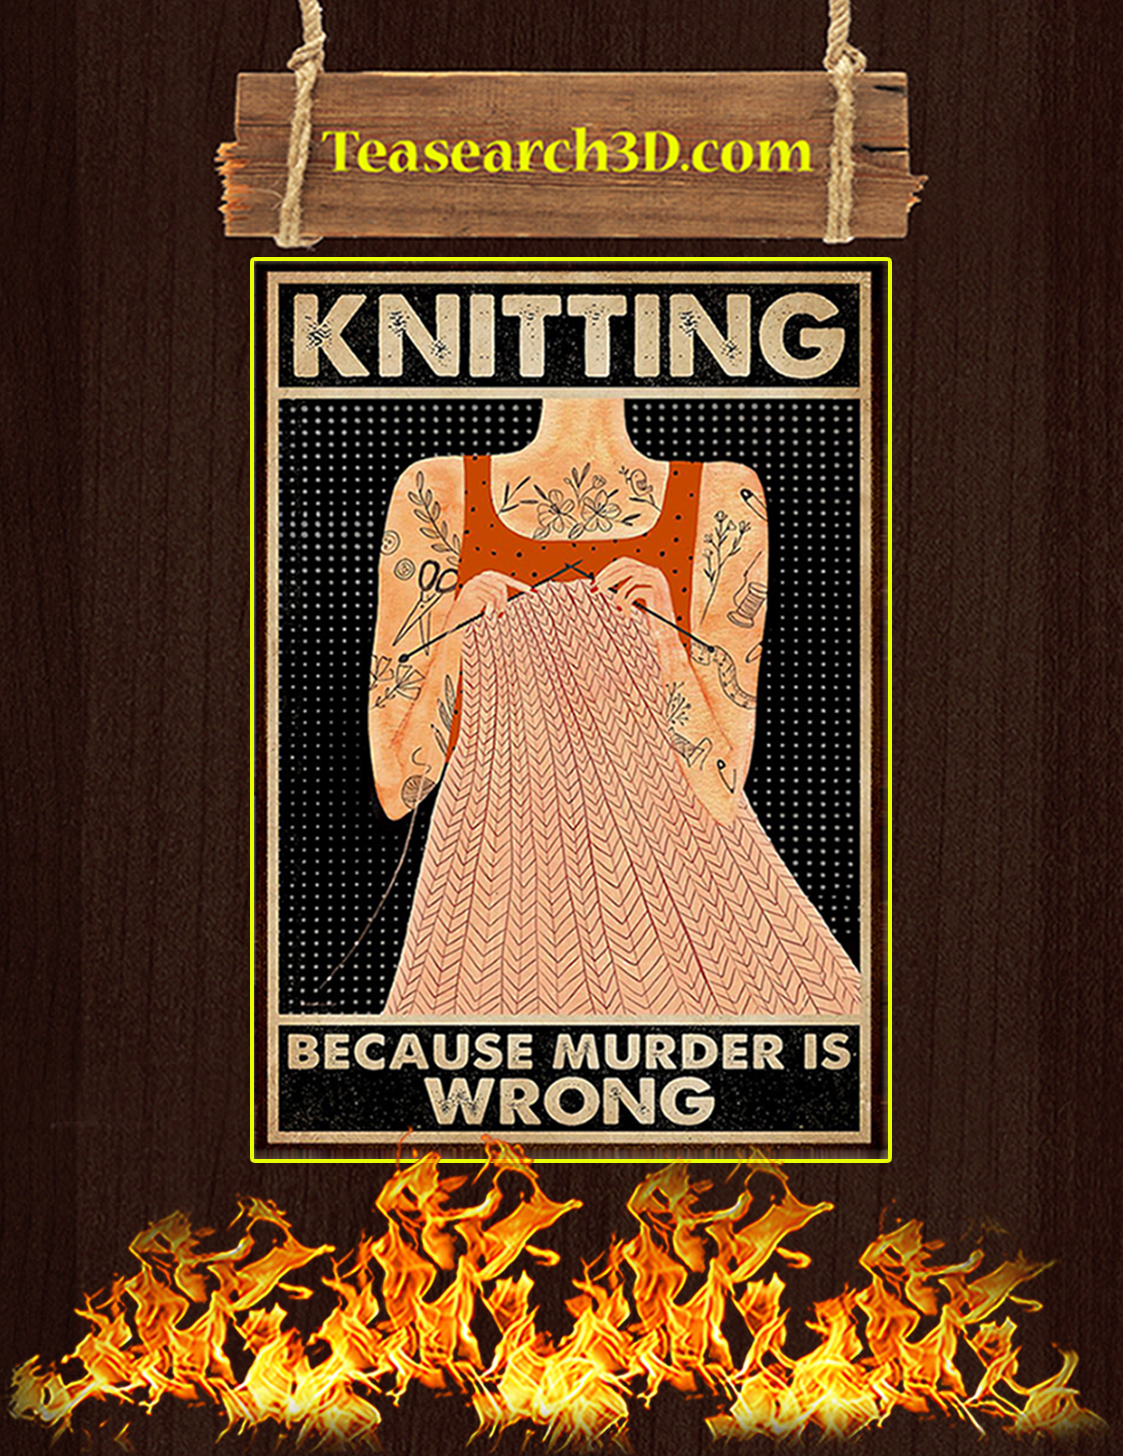 Tattoo girl knitting because murder is wrong poster A3